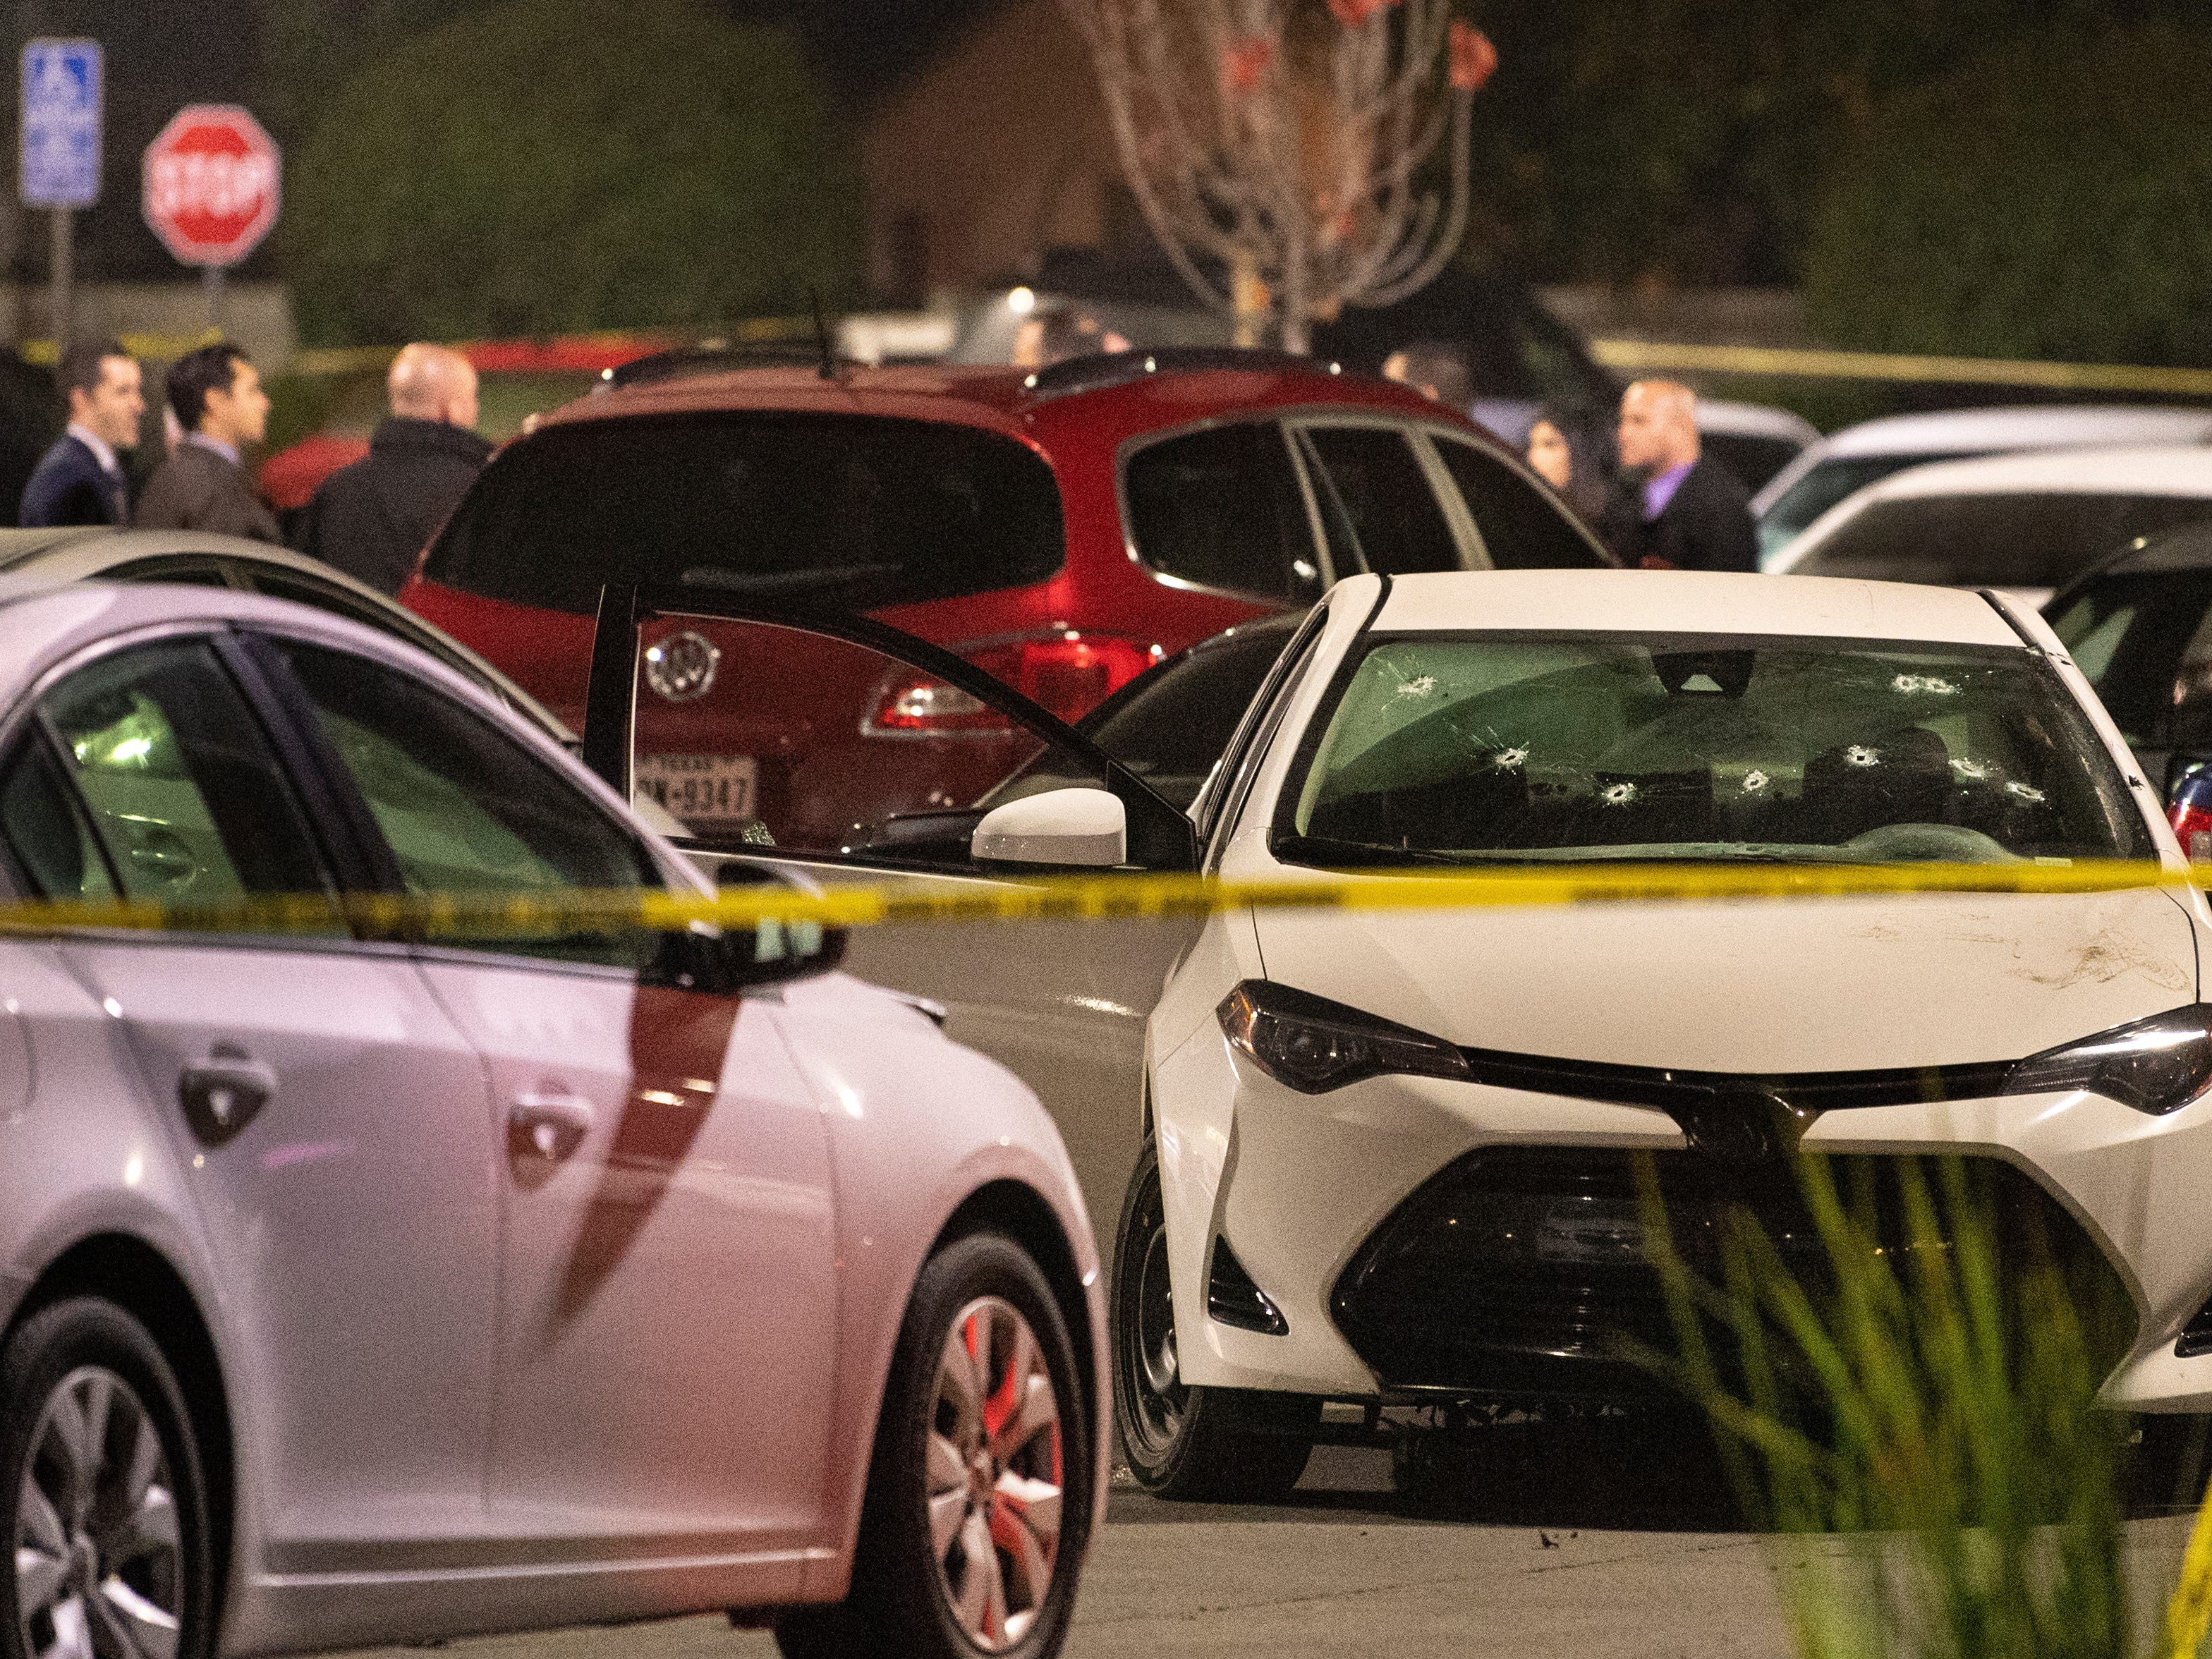 A stolen car driven by the suspect was hit with gun fire at least ten times as Visalia Police attempted to take the man into custody in the north parking lot of Visalia Mall on Thursday, January 10, 2019.